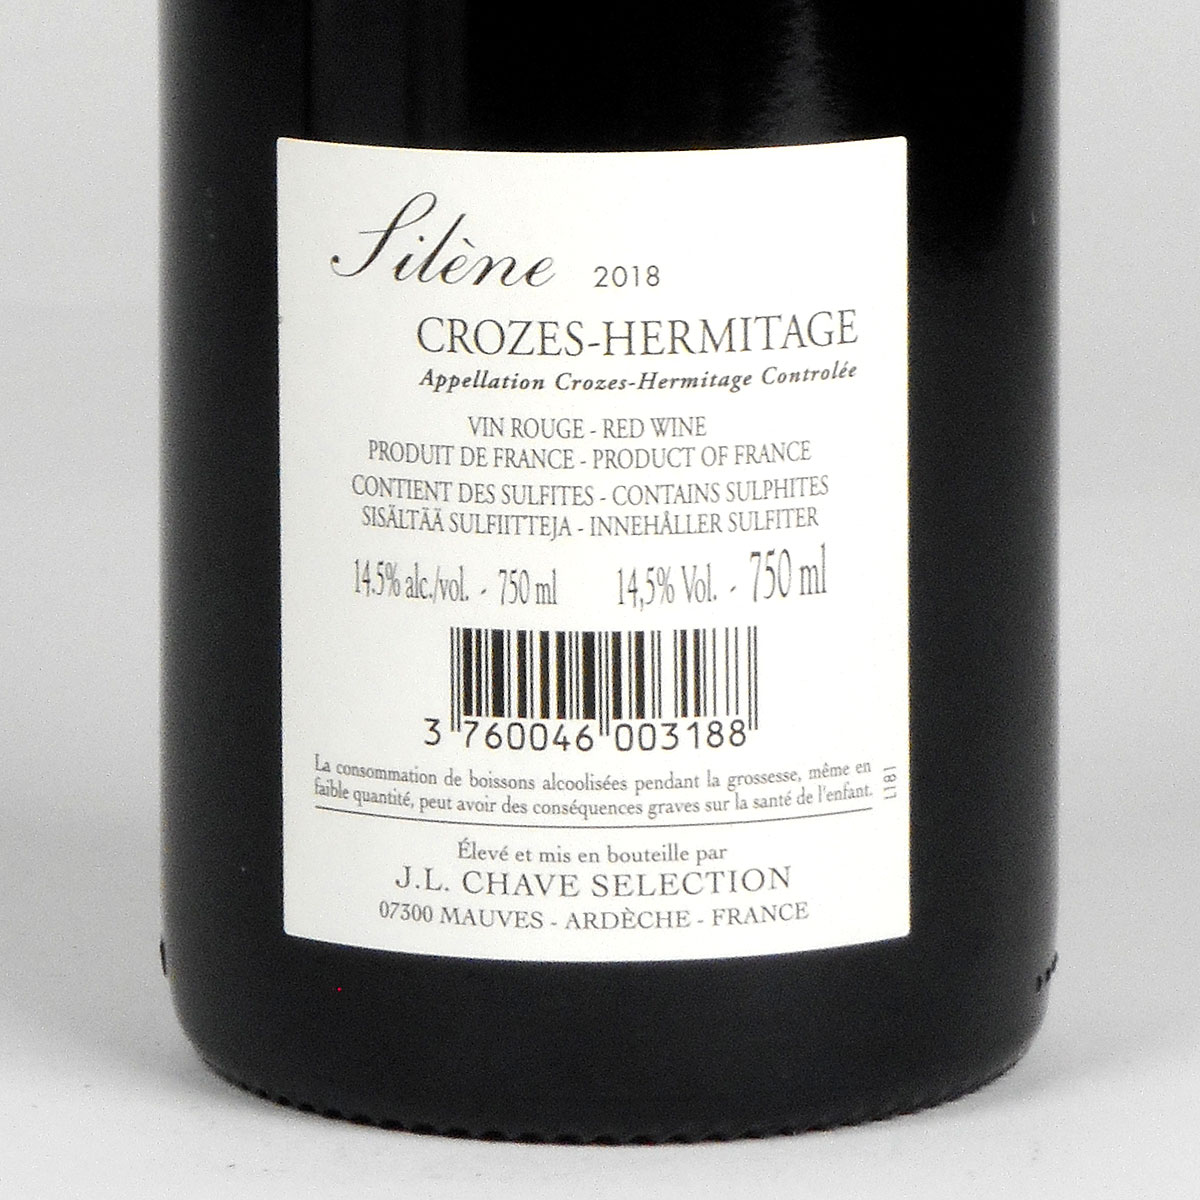 Crozes-Hermitage: Jean-Louis Chave Sélection 'Silène' 2018 - Bottle Rear Label